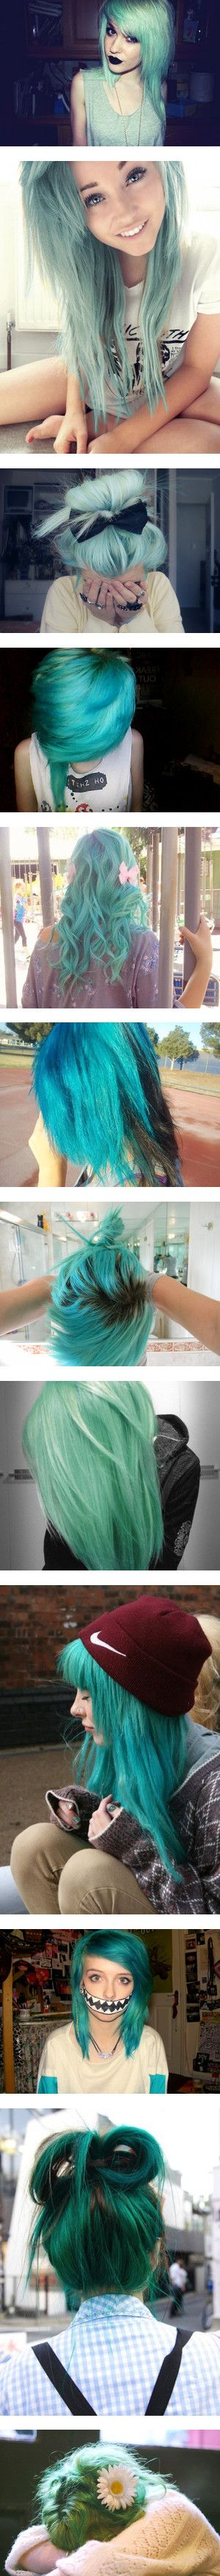 Blue hair is gorgeousss! I just dyed my ends a bluish color but I would love to do this to!